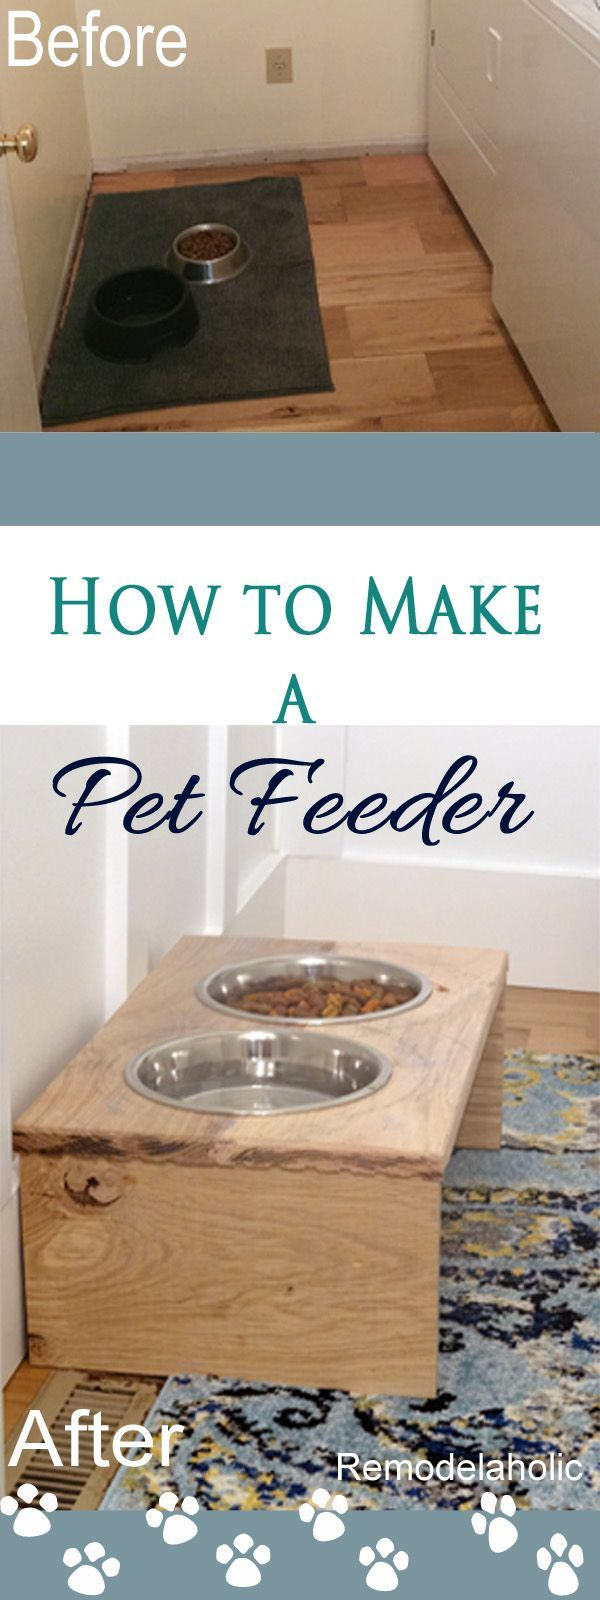 Hello, I'm Tamara visiting again from Provident Home Design where I share design, decorating, and DIY tips on a budget! Today I have a special DIY tutorial for all you pet lovers–2 different stylish p